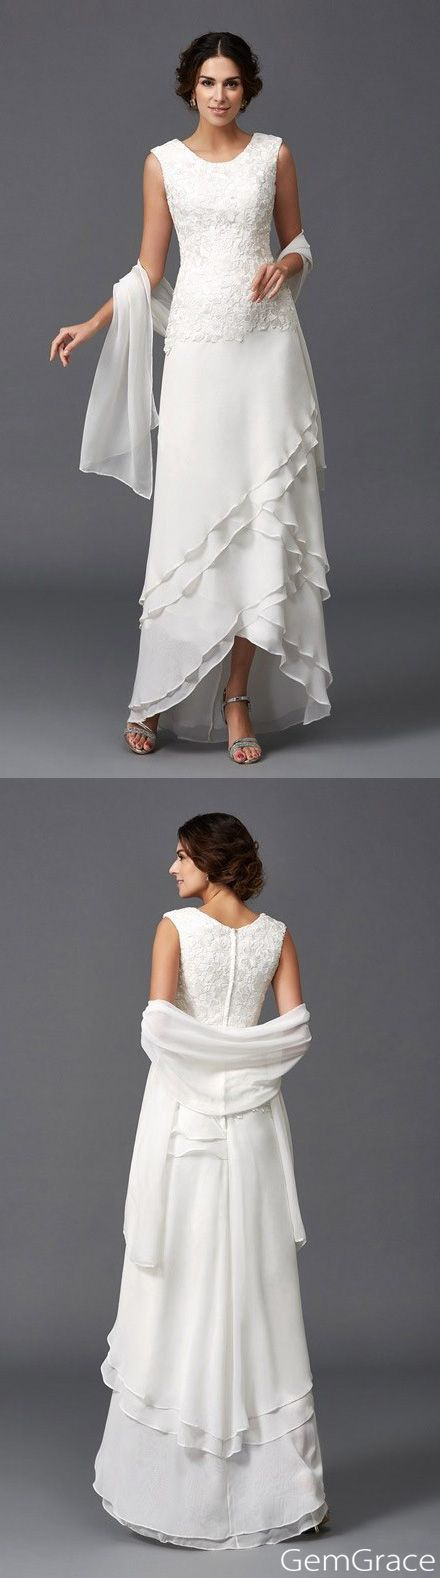 Fancy Elegant for ages older brides Mother of the bride dress With the beautiful lace top and ruffles it is elegant for mature women